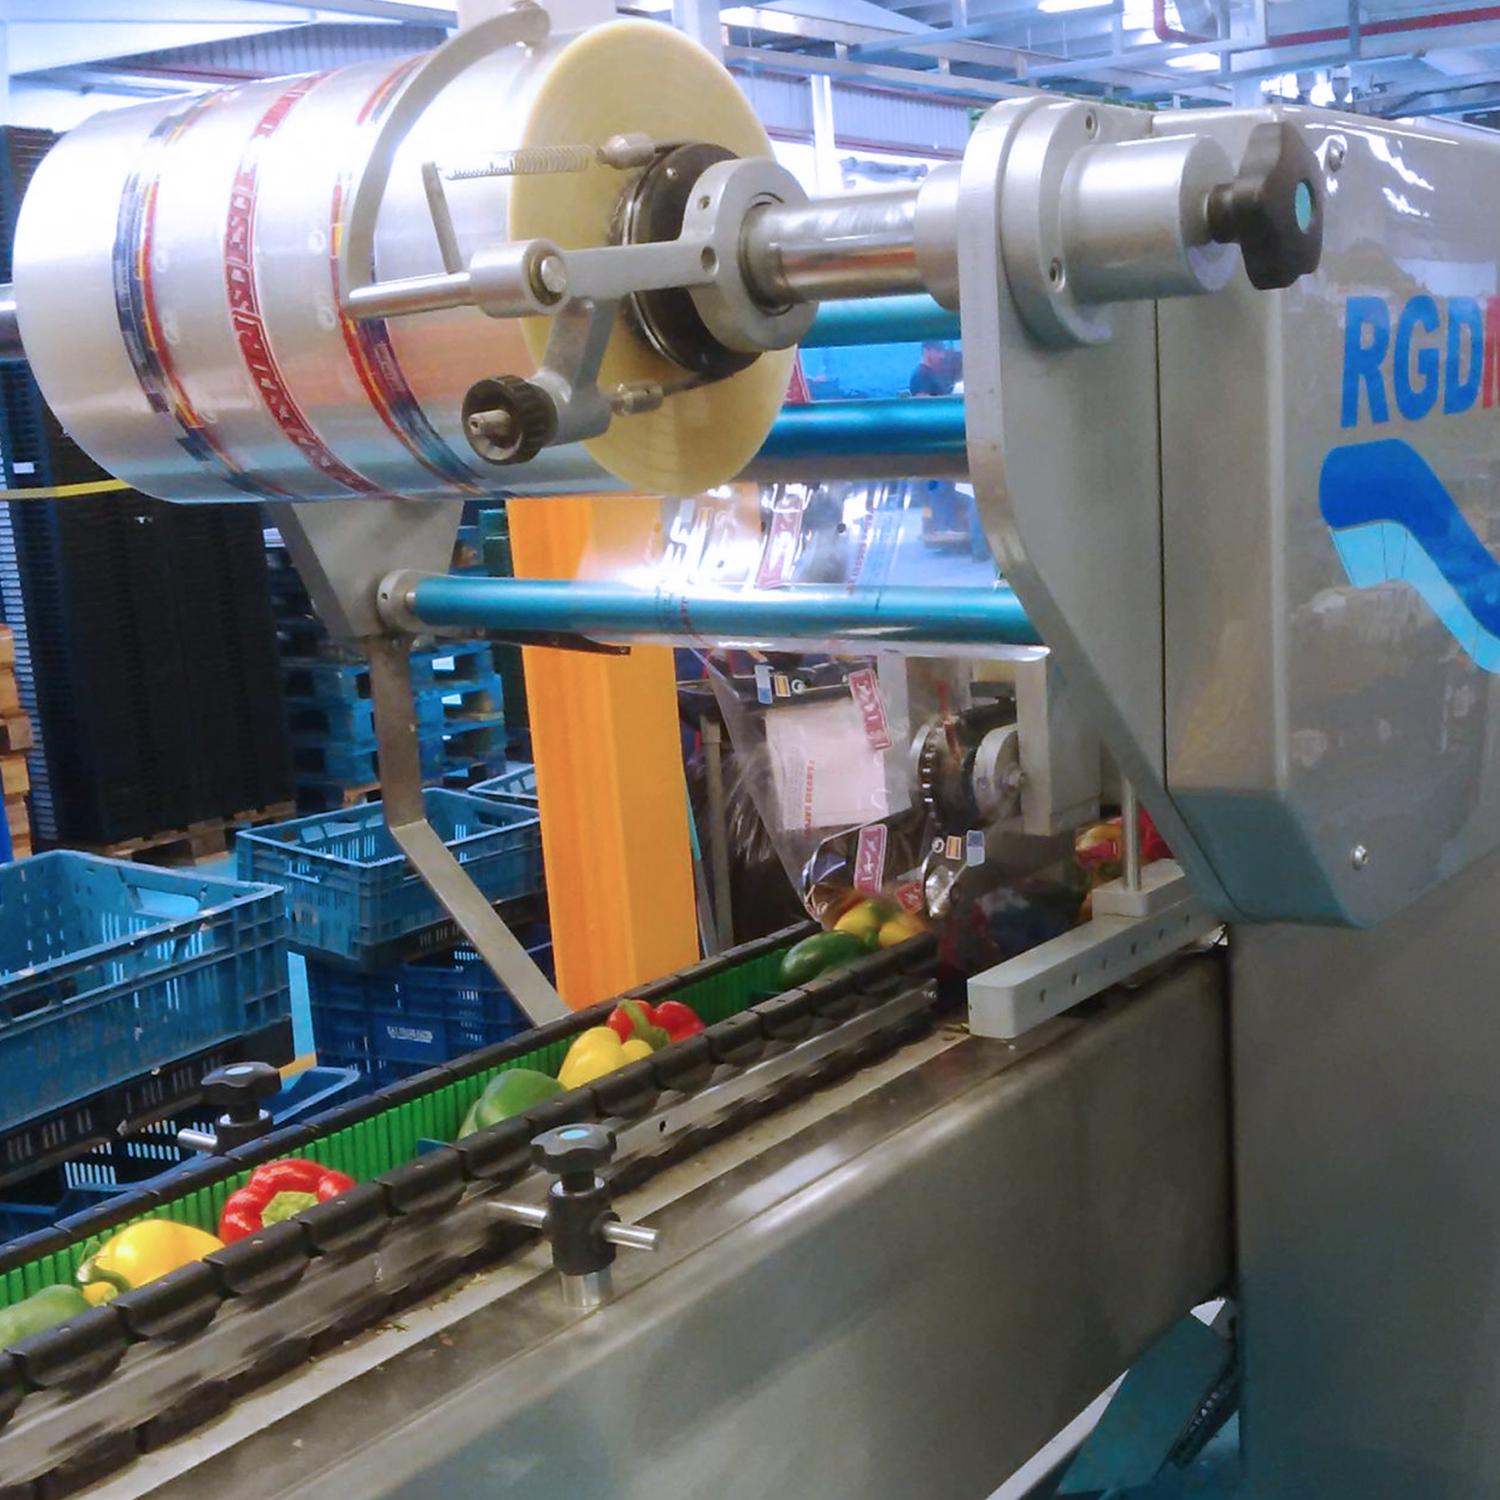 rgd mape flow wrap machine packing bell peppers in packaging facility